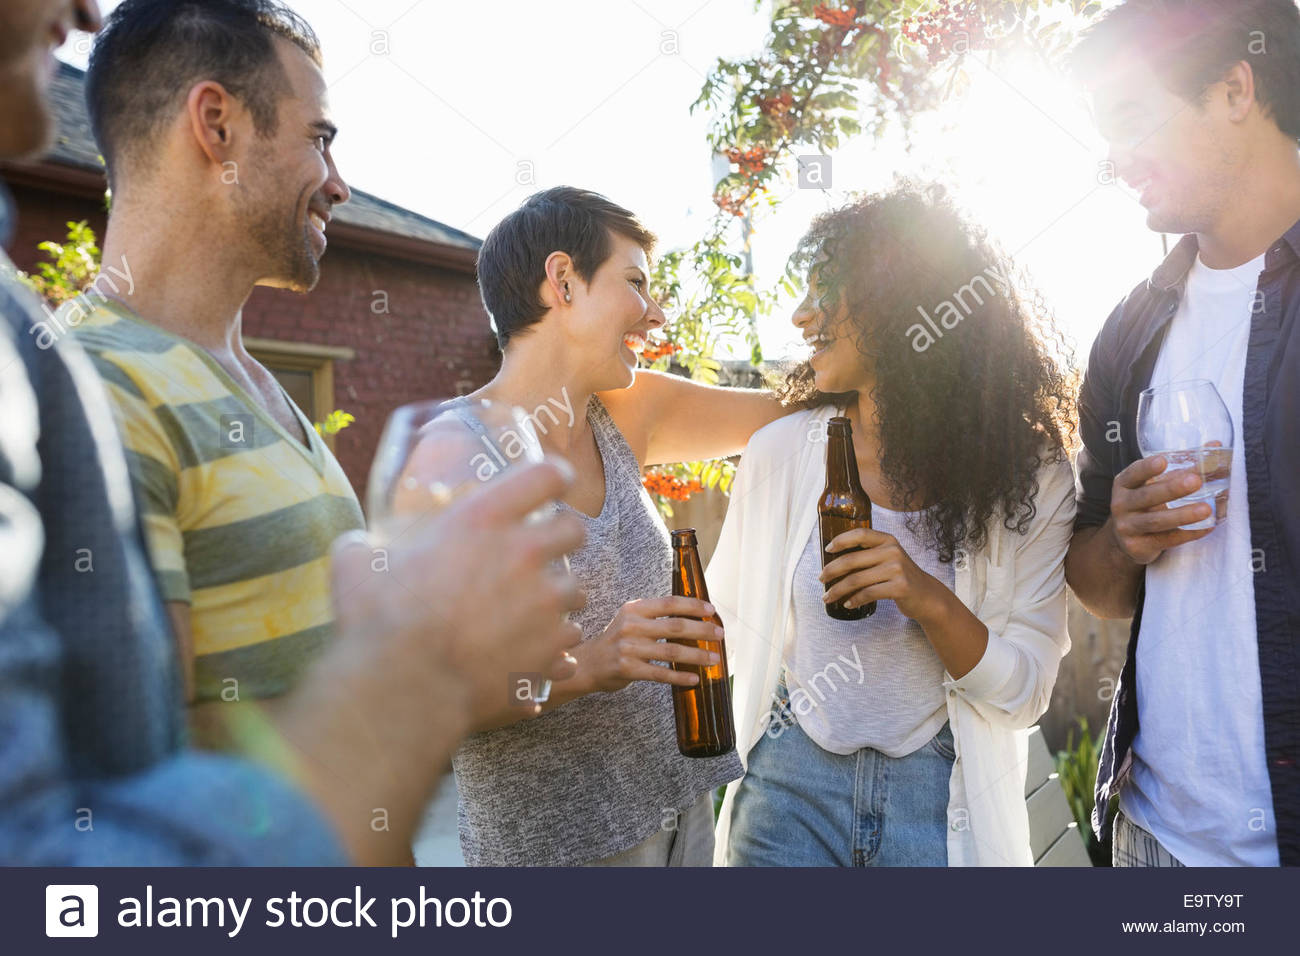 Friends drinking and hanging out at backyard barbecue Stock Photo